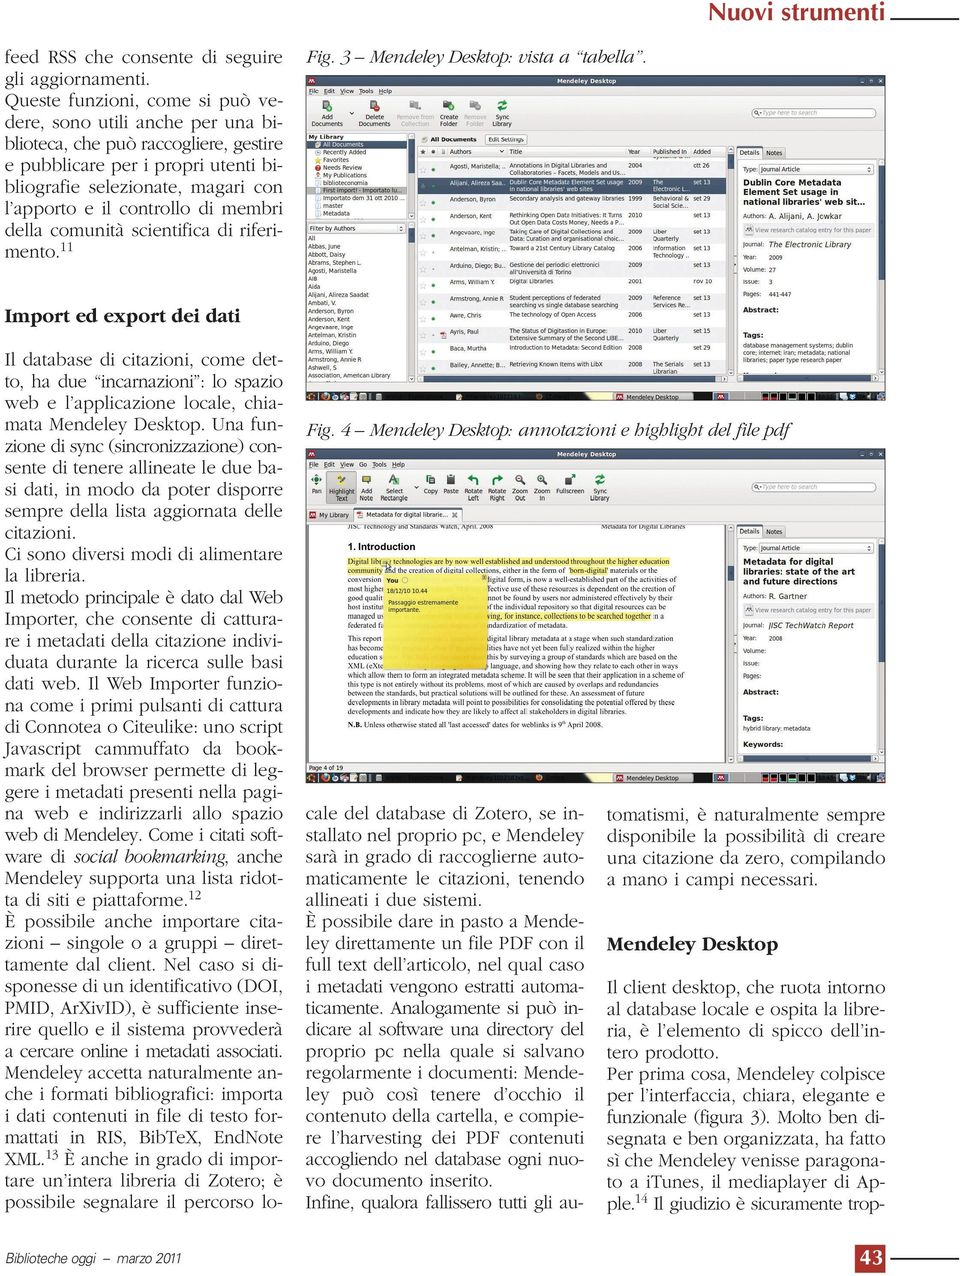 di membri della comunità scientifica di riferimento.11 Fig. 3 Mendeley Desktop: vista a tabella.